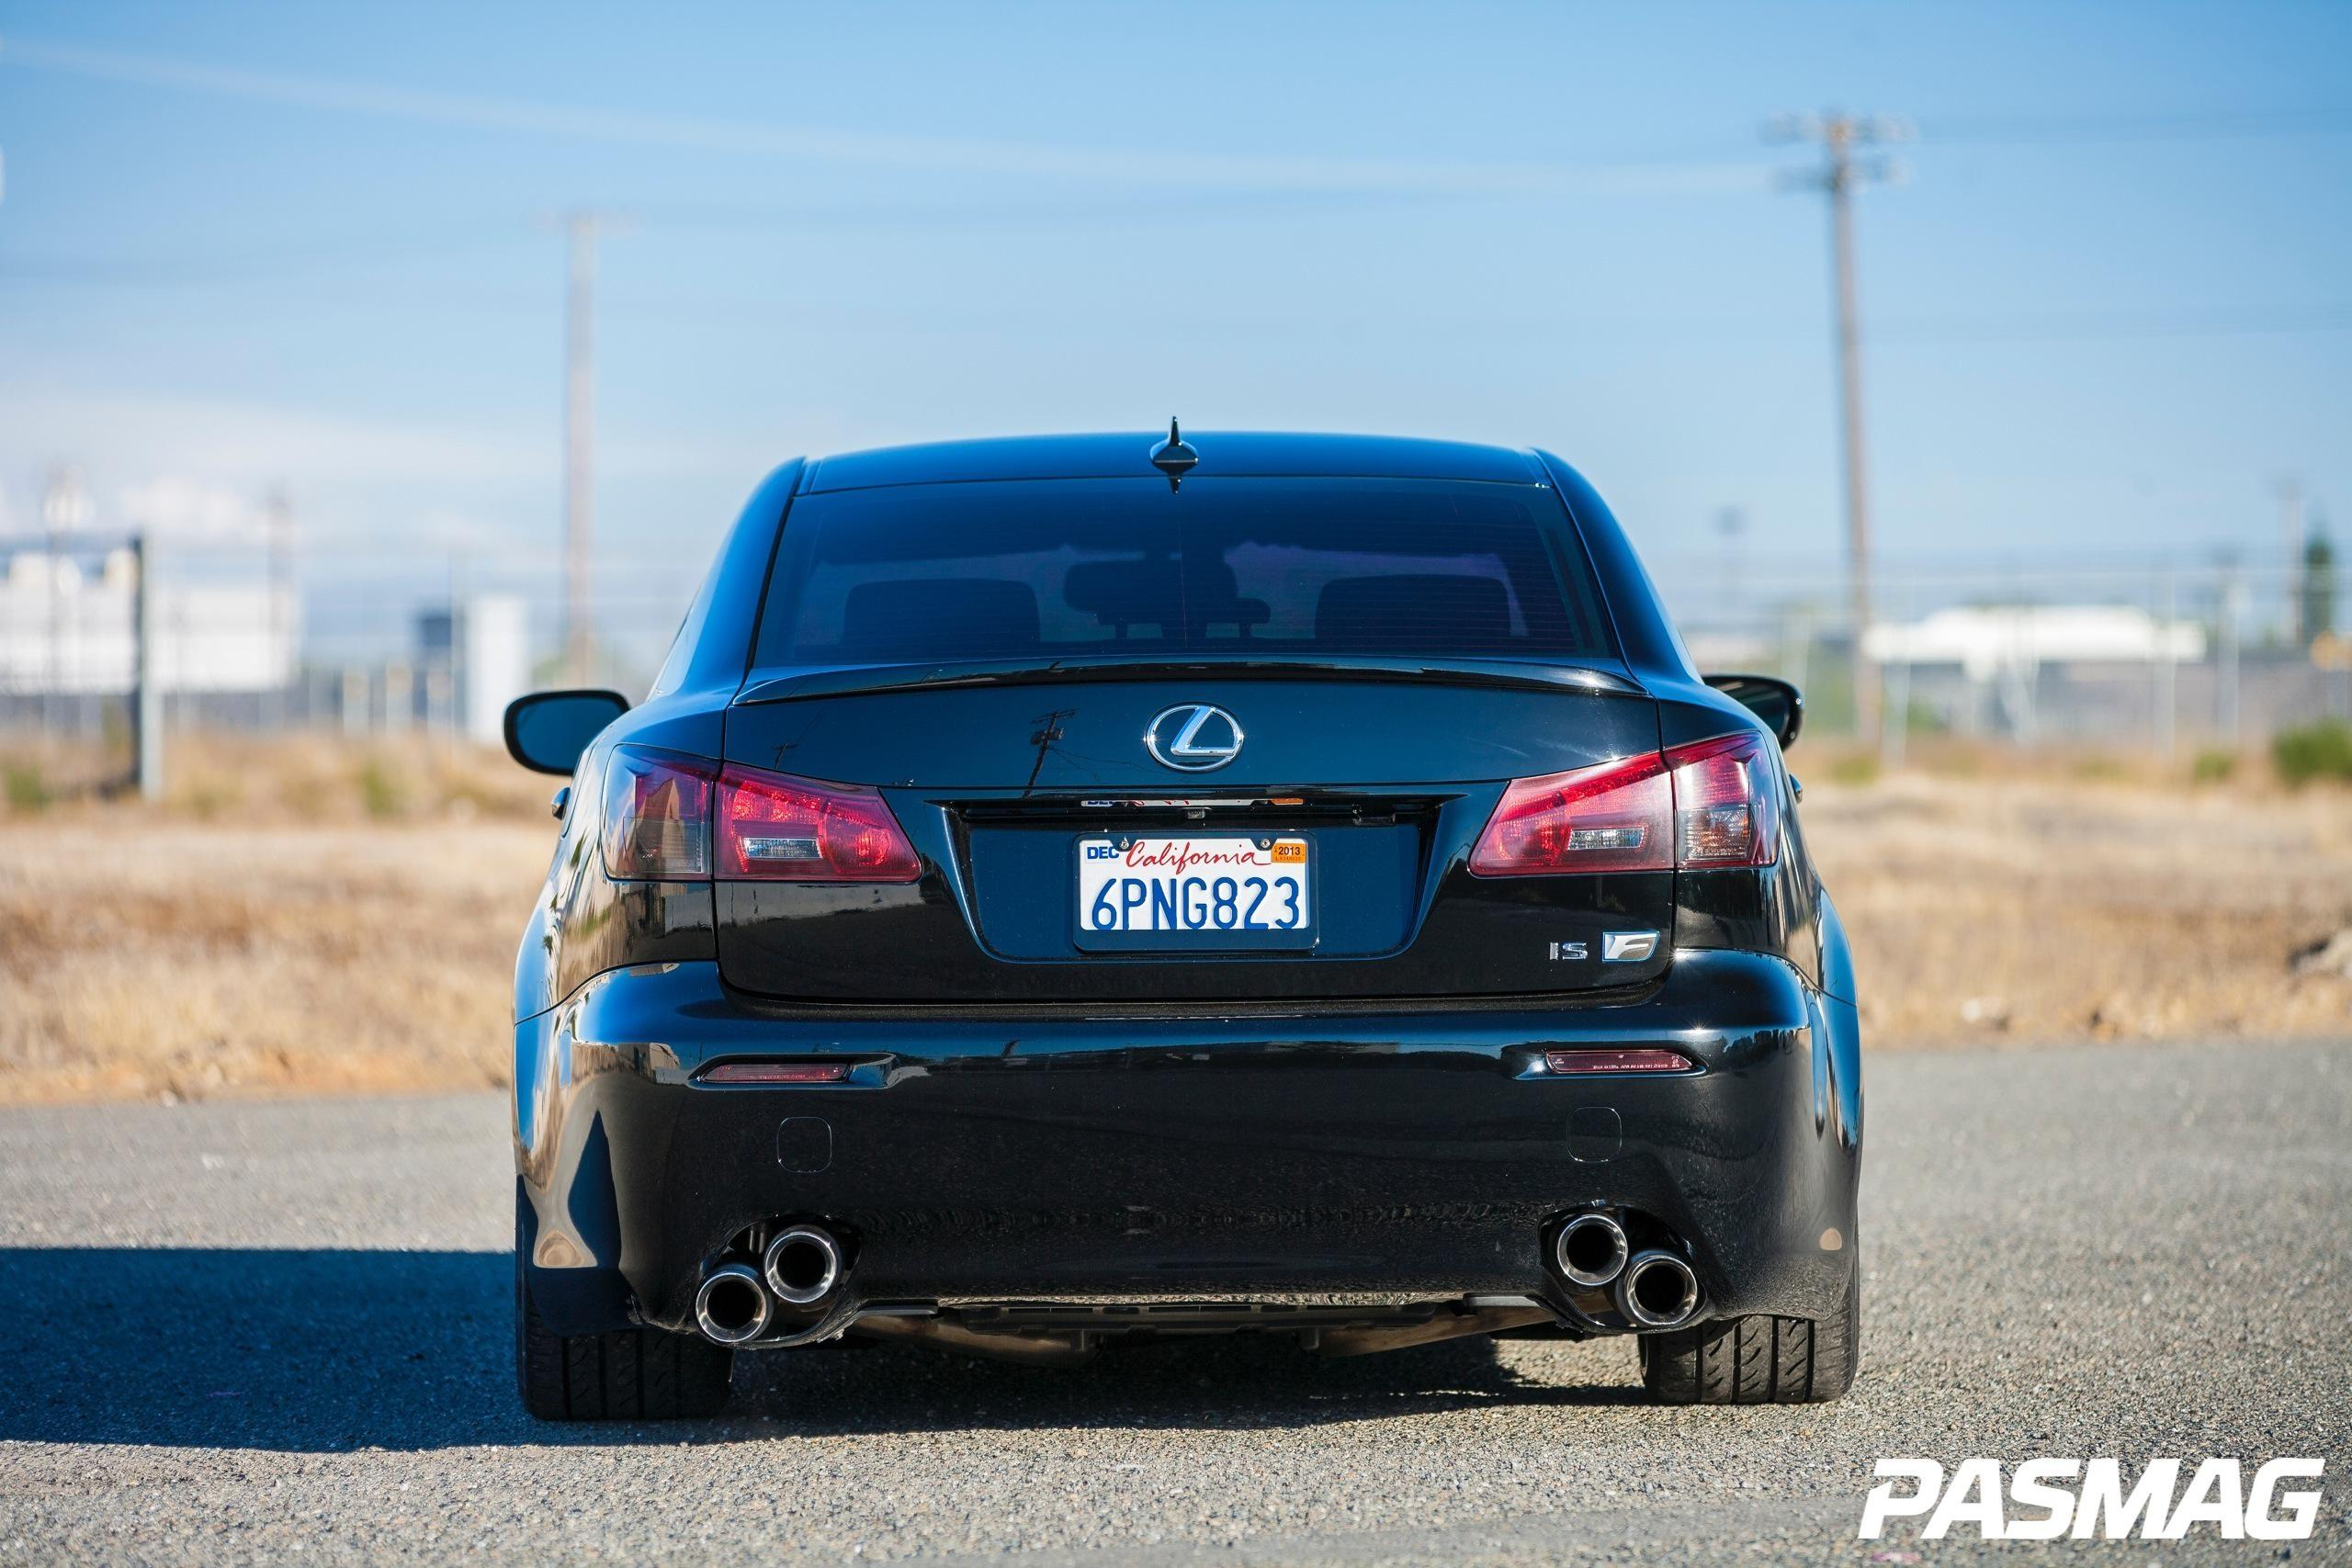 Hidden Treasure: Steve Meadeu0027s 2011 Lexus ISF